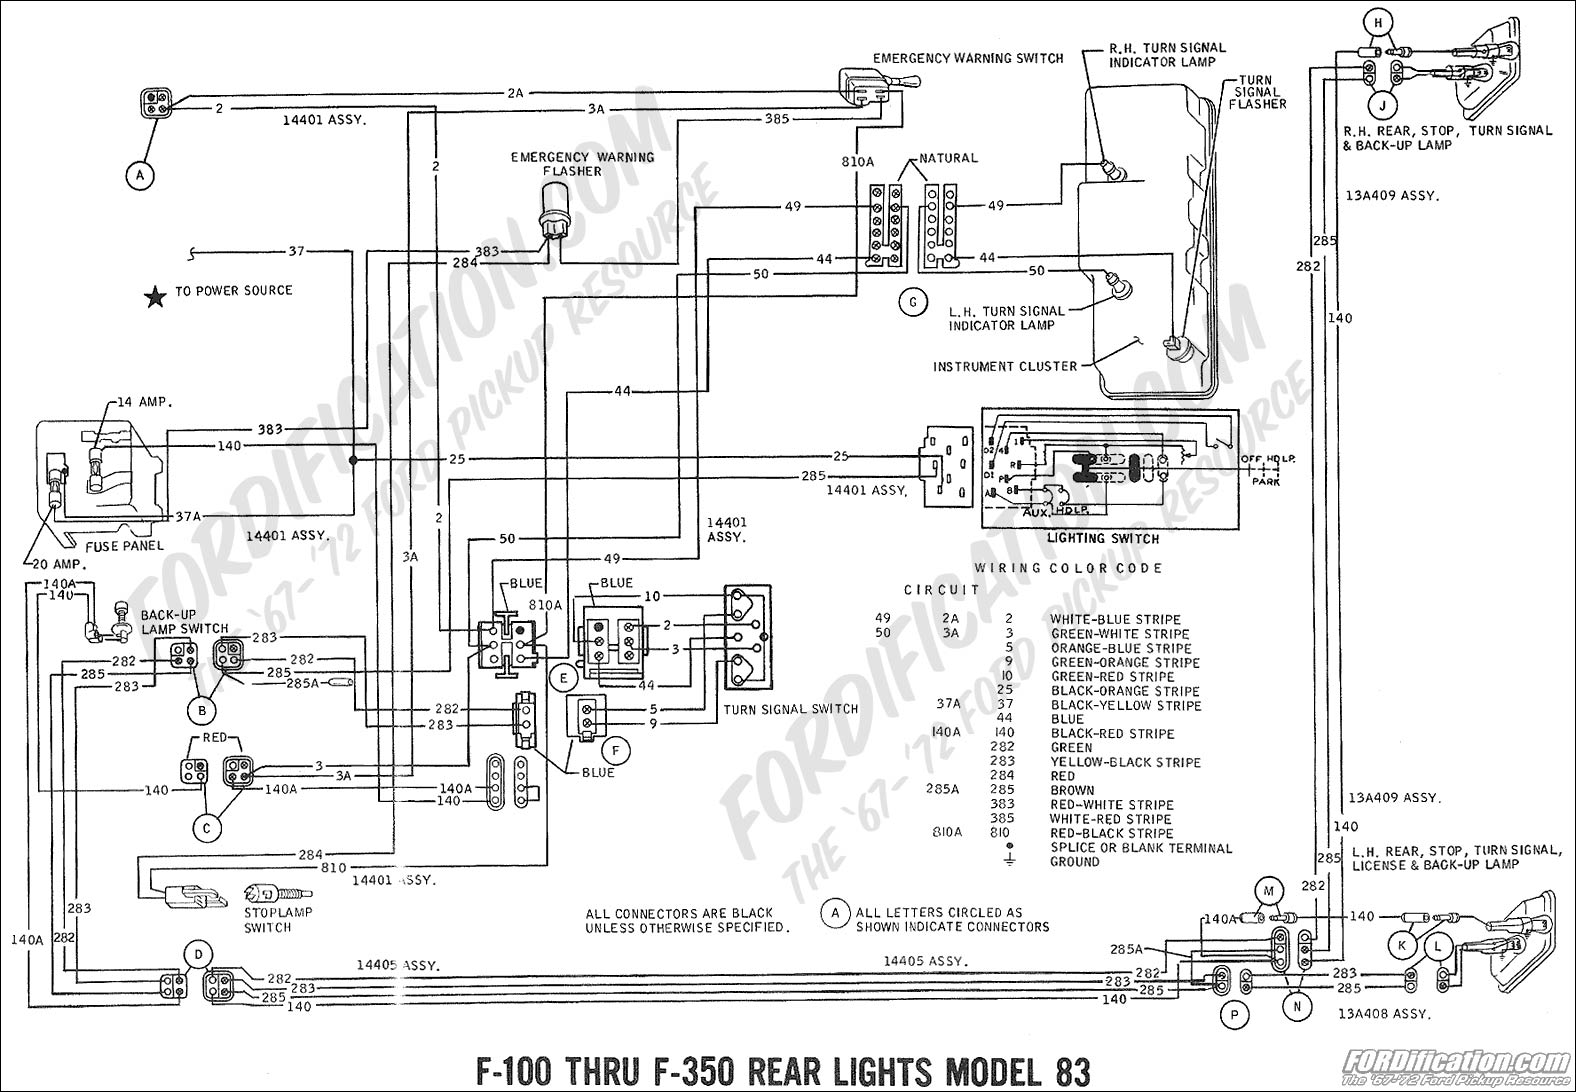 ford f100 alternator wiring harness wiring diagram 1970 Dodge Alternator Wiring 76 ford alternator wiring diagrams wiring diagram